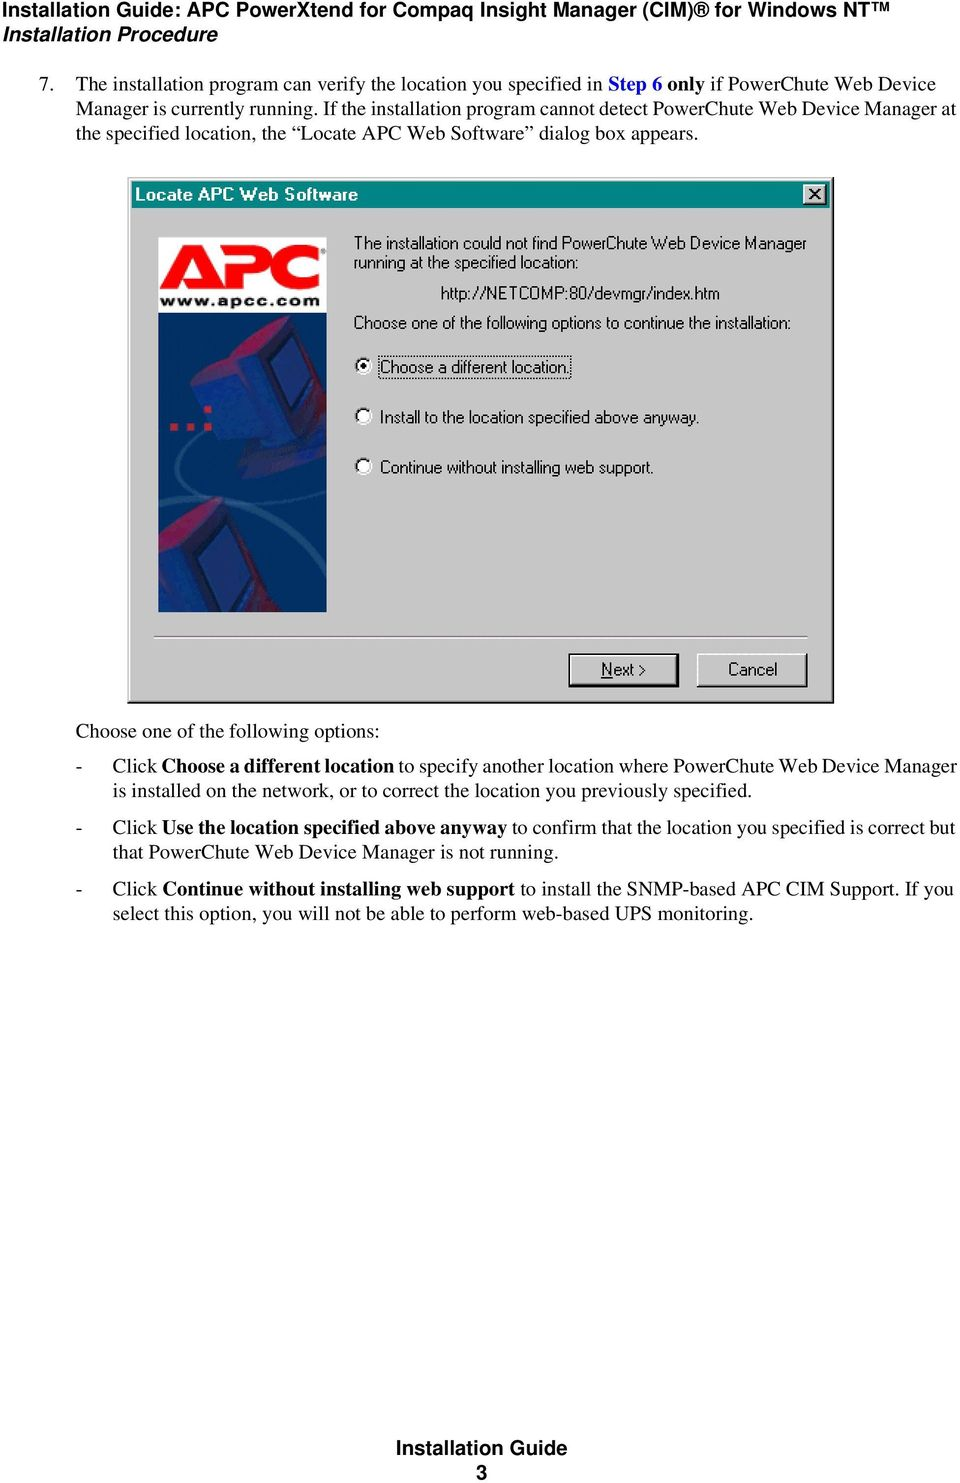 If the installation program cannot detect PowerChute Web Device Manager at the specified location, the Locate APC Web Software dialog box appears.